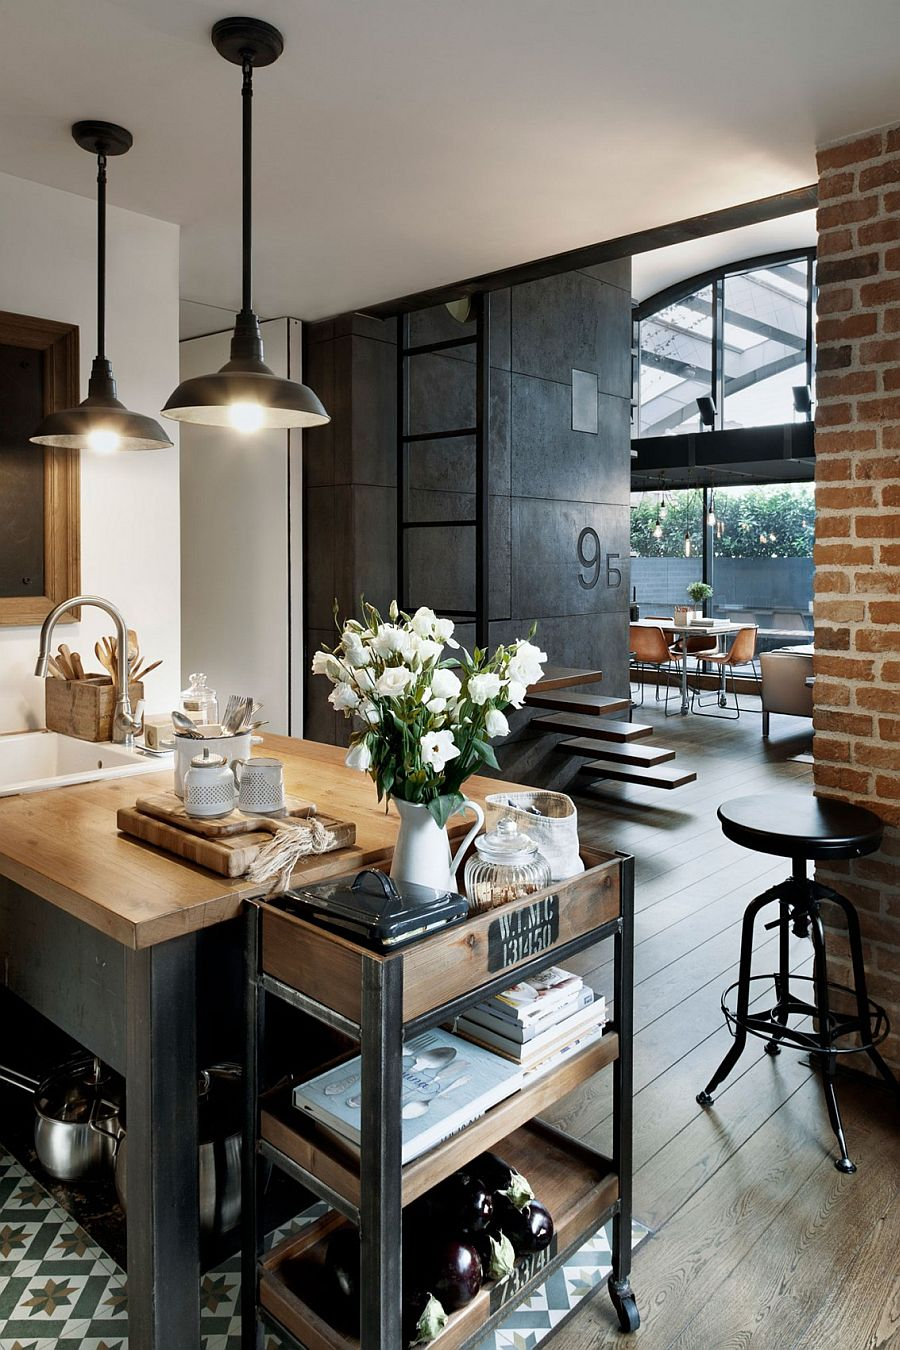 Custom crafted concrete panels, brick wall and lighting add industrial charm to the apartment